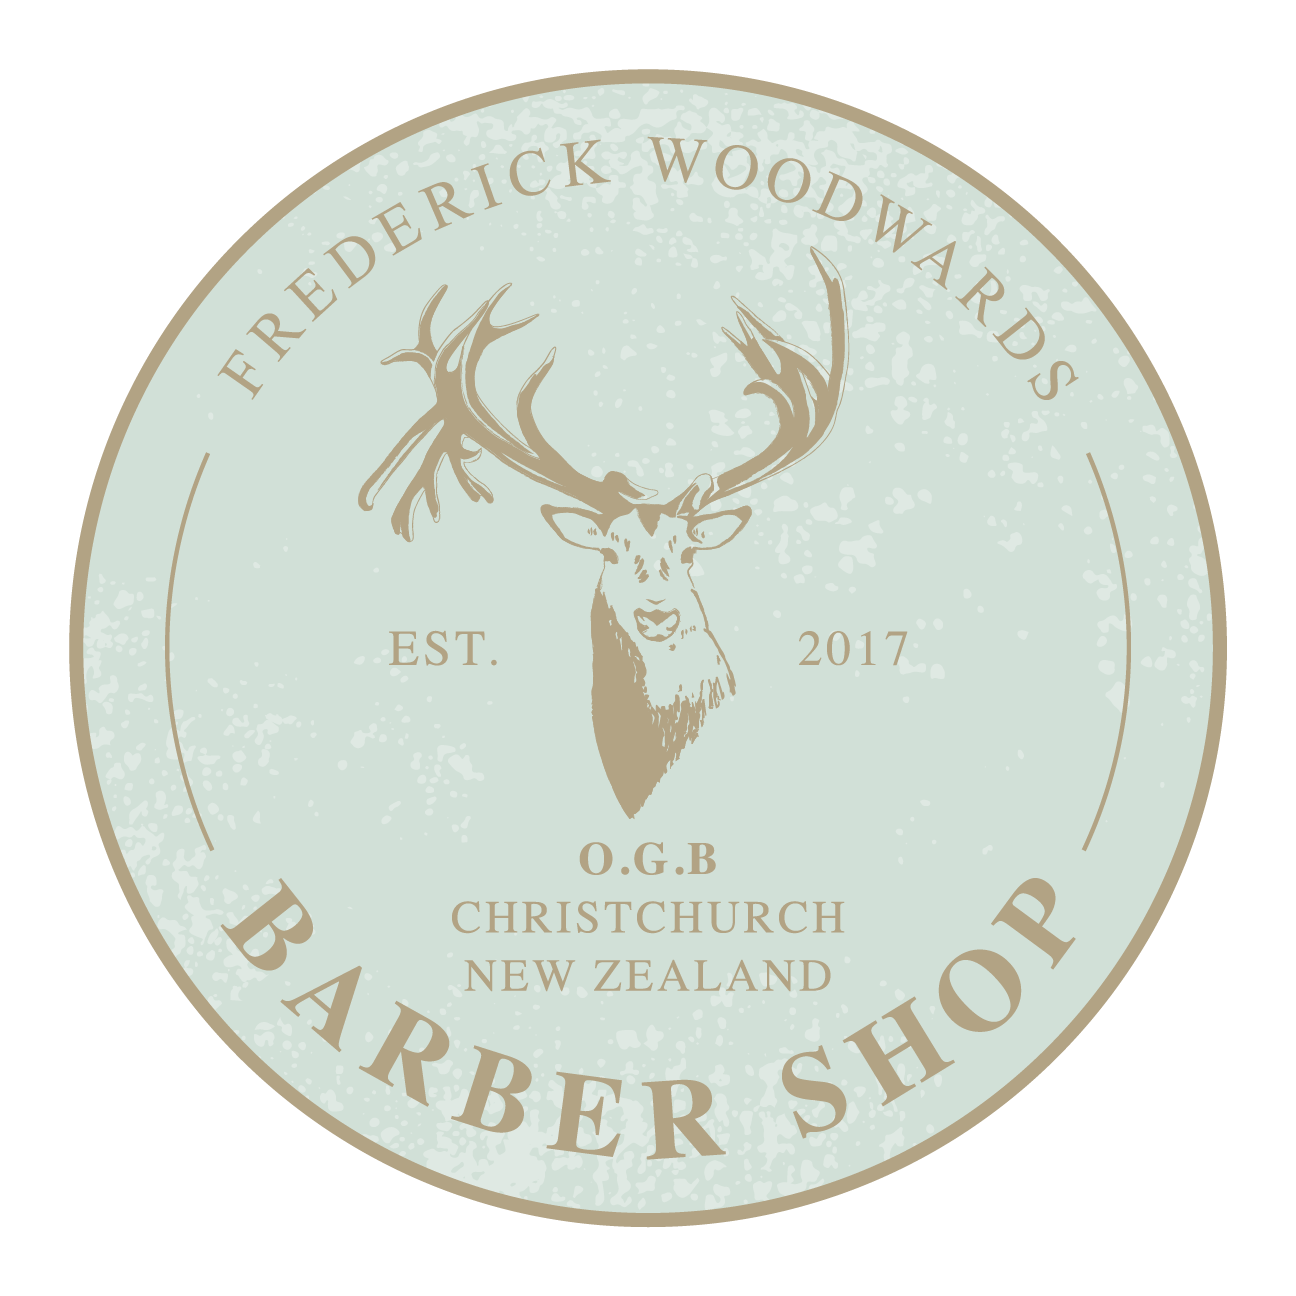 Frederick Woodwards Barber Shop | Best Barber in Christchurch